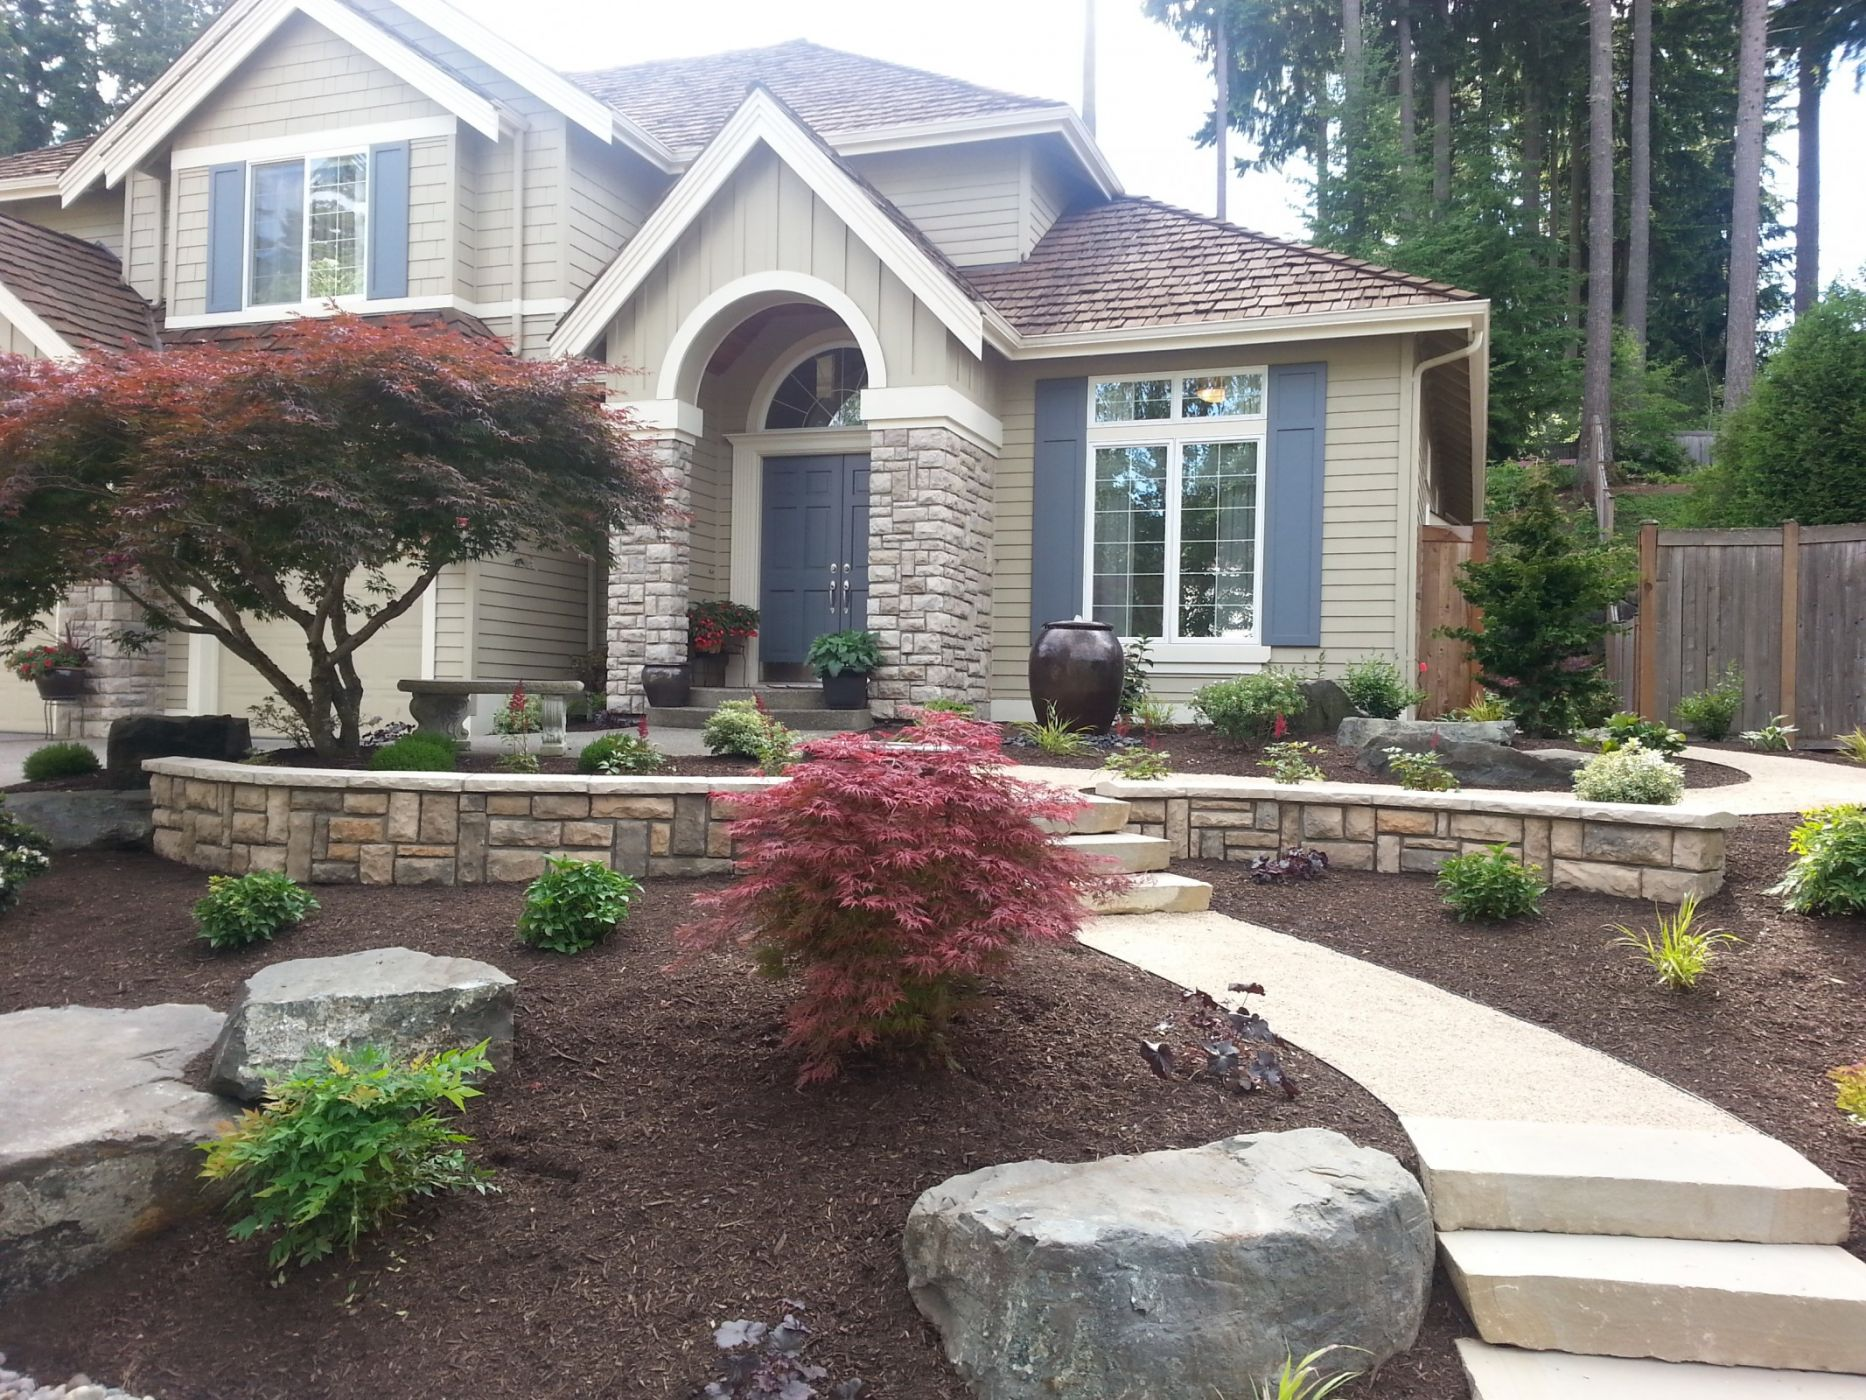 Janika landscaping ideas front yard illinois here for How to design landscaping